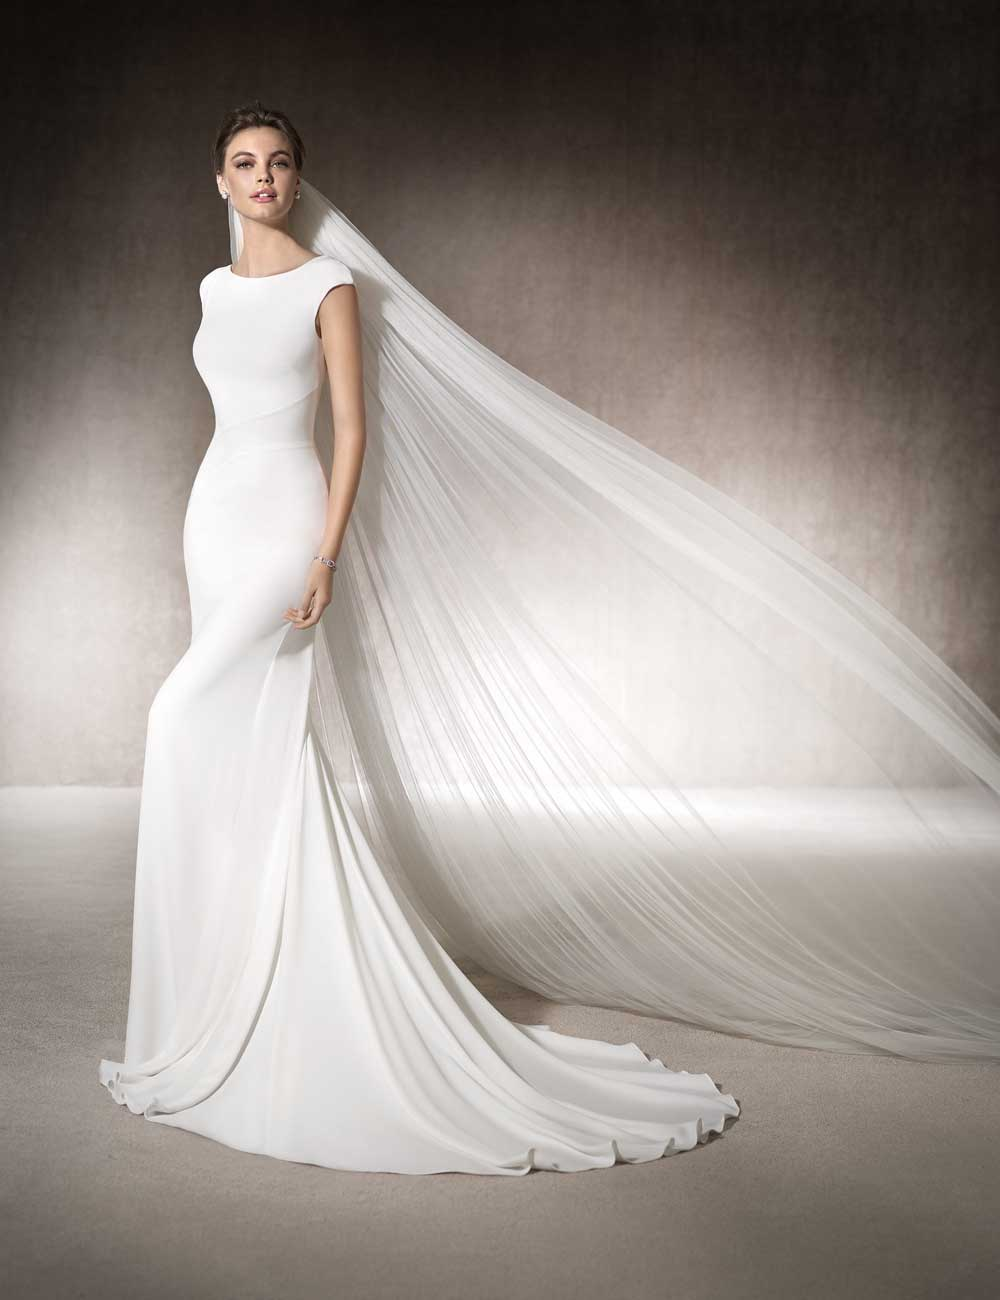 Dress In Plain Crepe Silk With A High Neckline Cap Sleeves And Low Open Back This Simple Style Looks Beautiful Long Flowing Tulle Veil